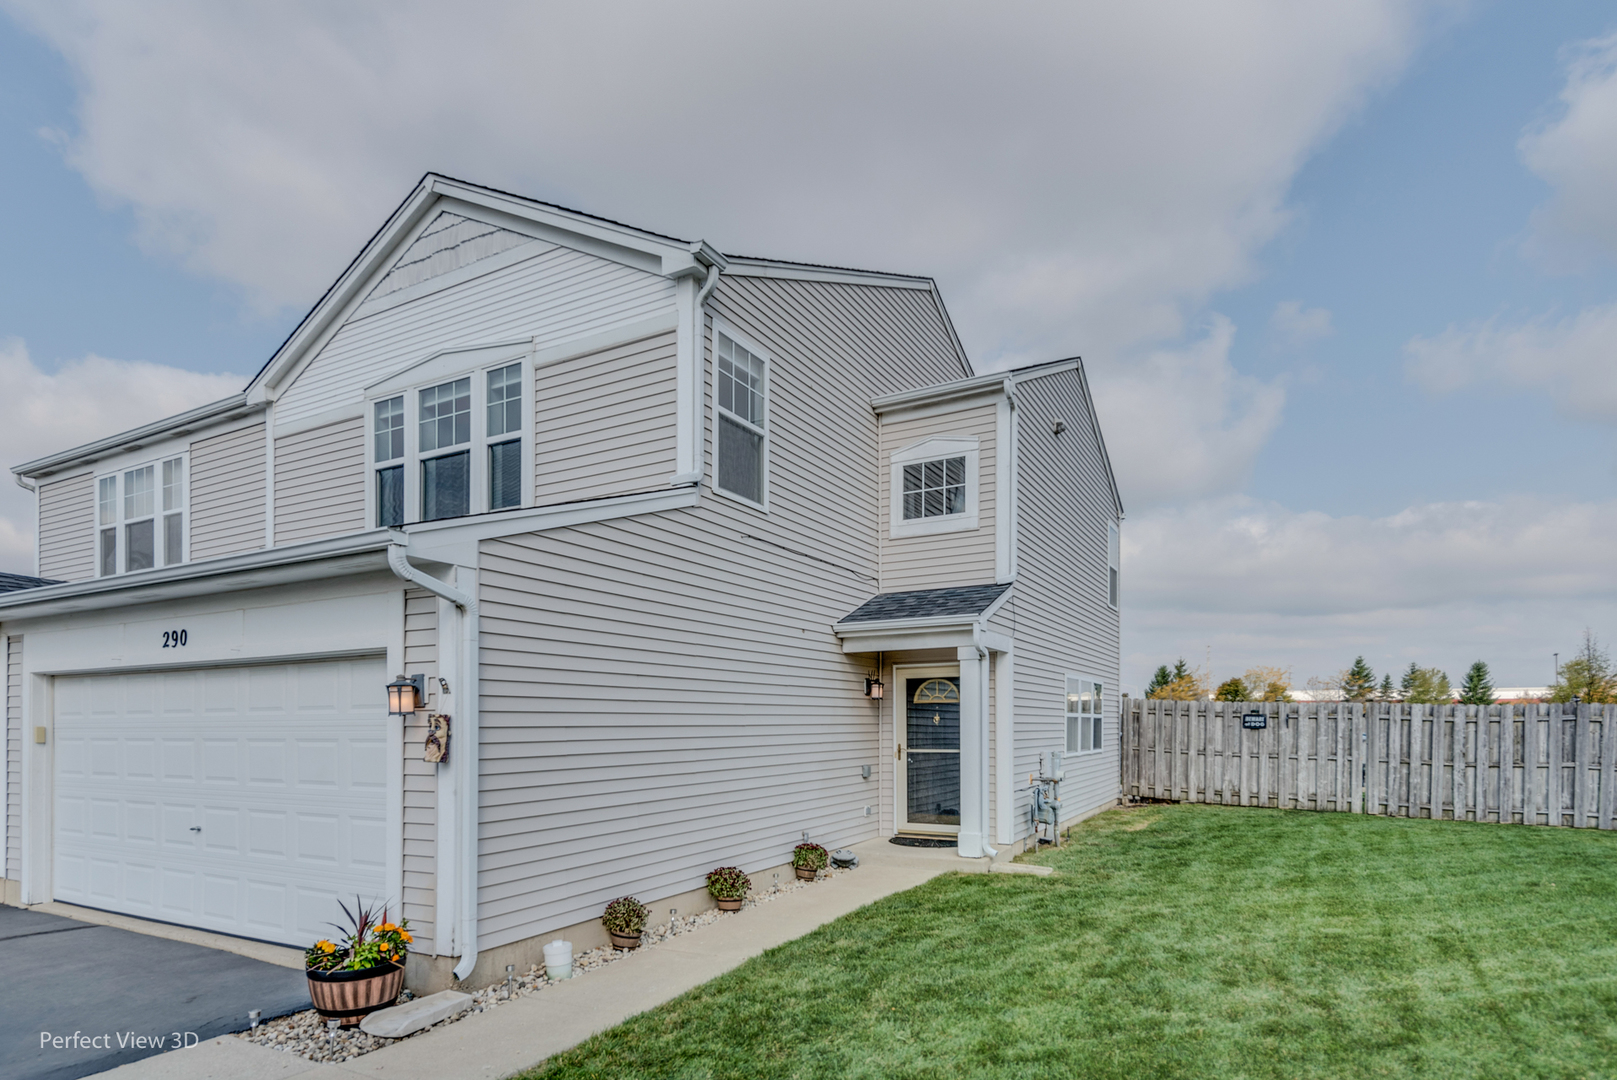 Photo for 290 Wedgewood Circle, Lake In The Hills, IL 60156 (MLS # 10908044)